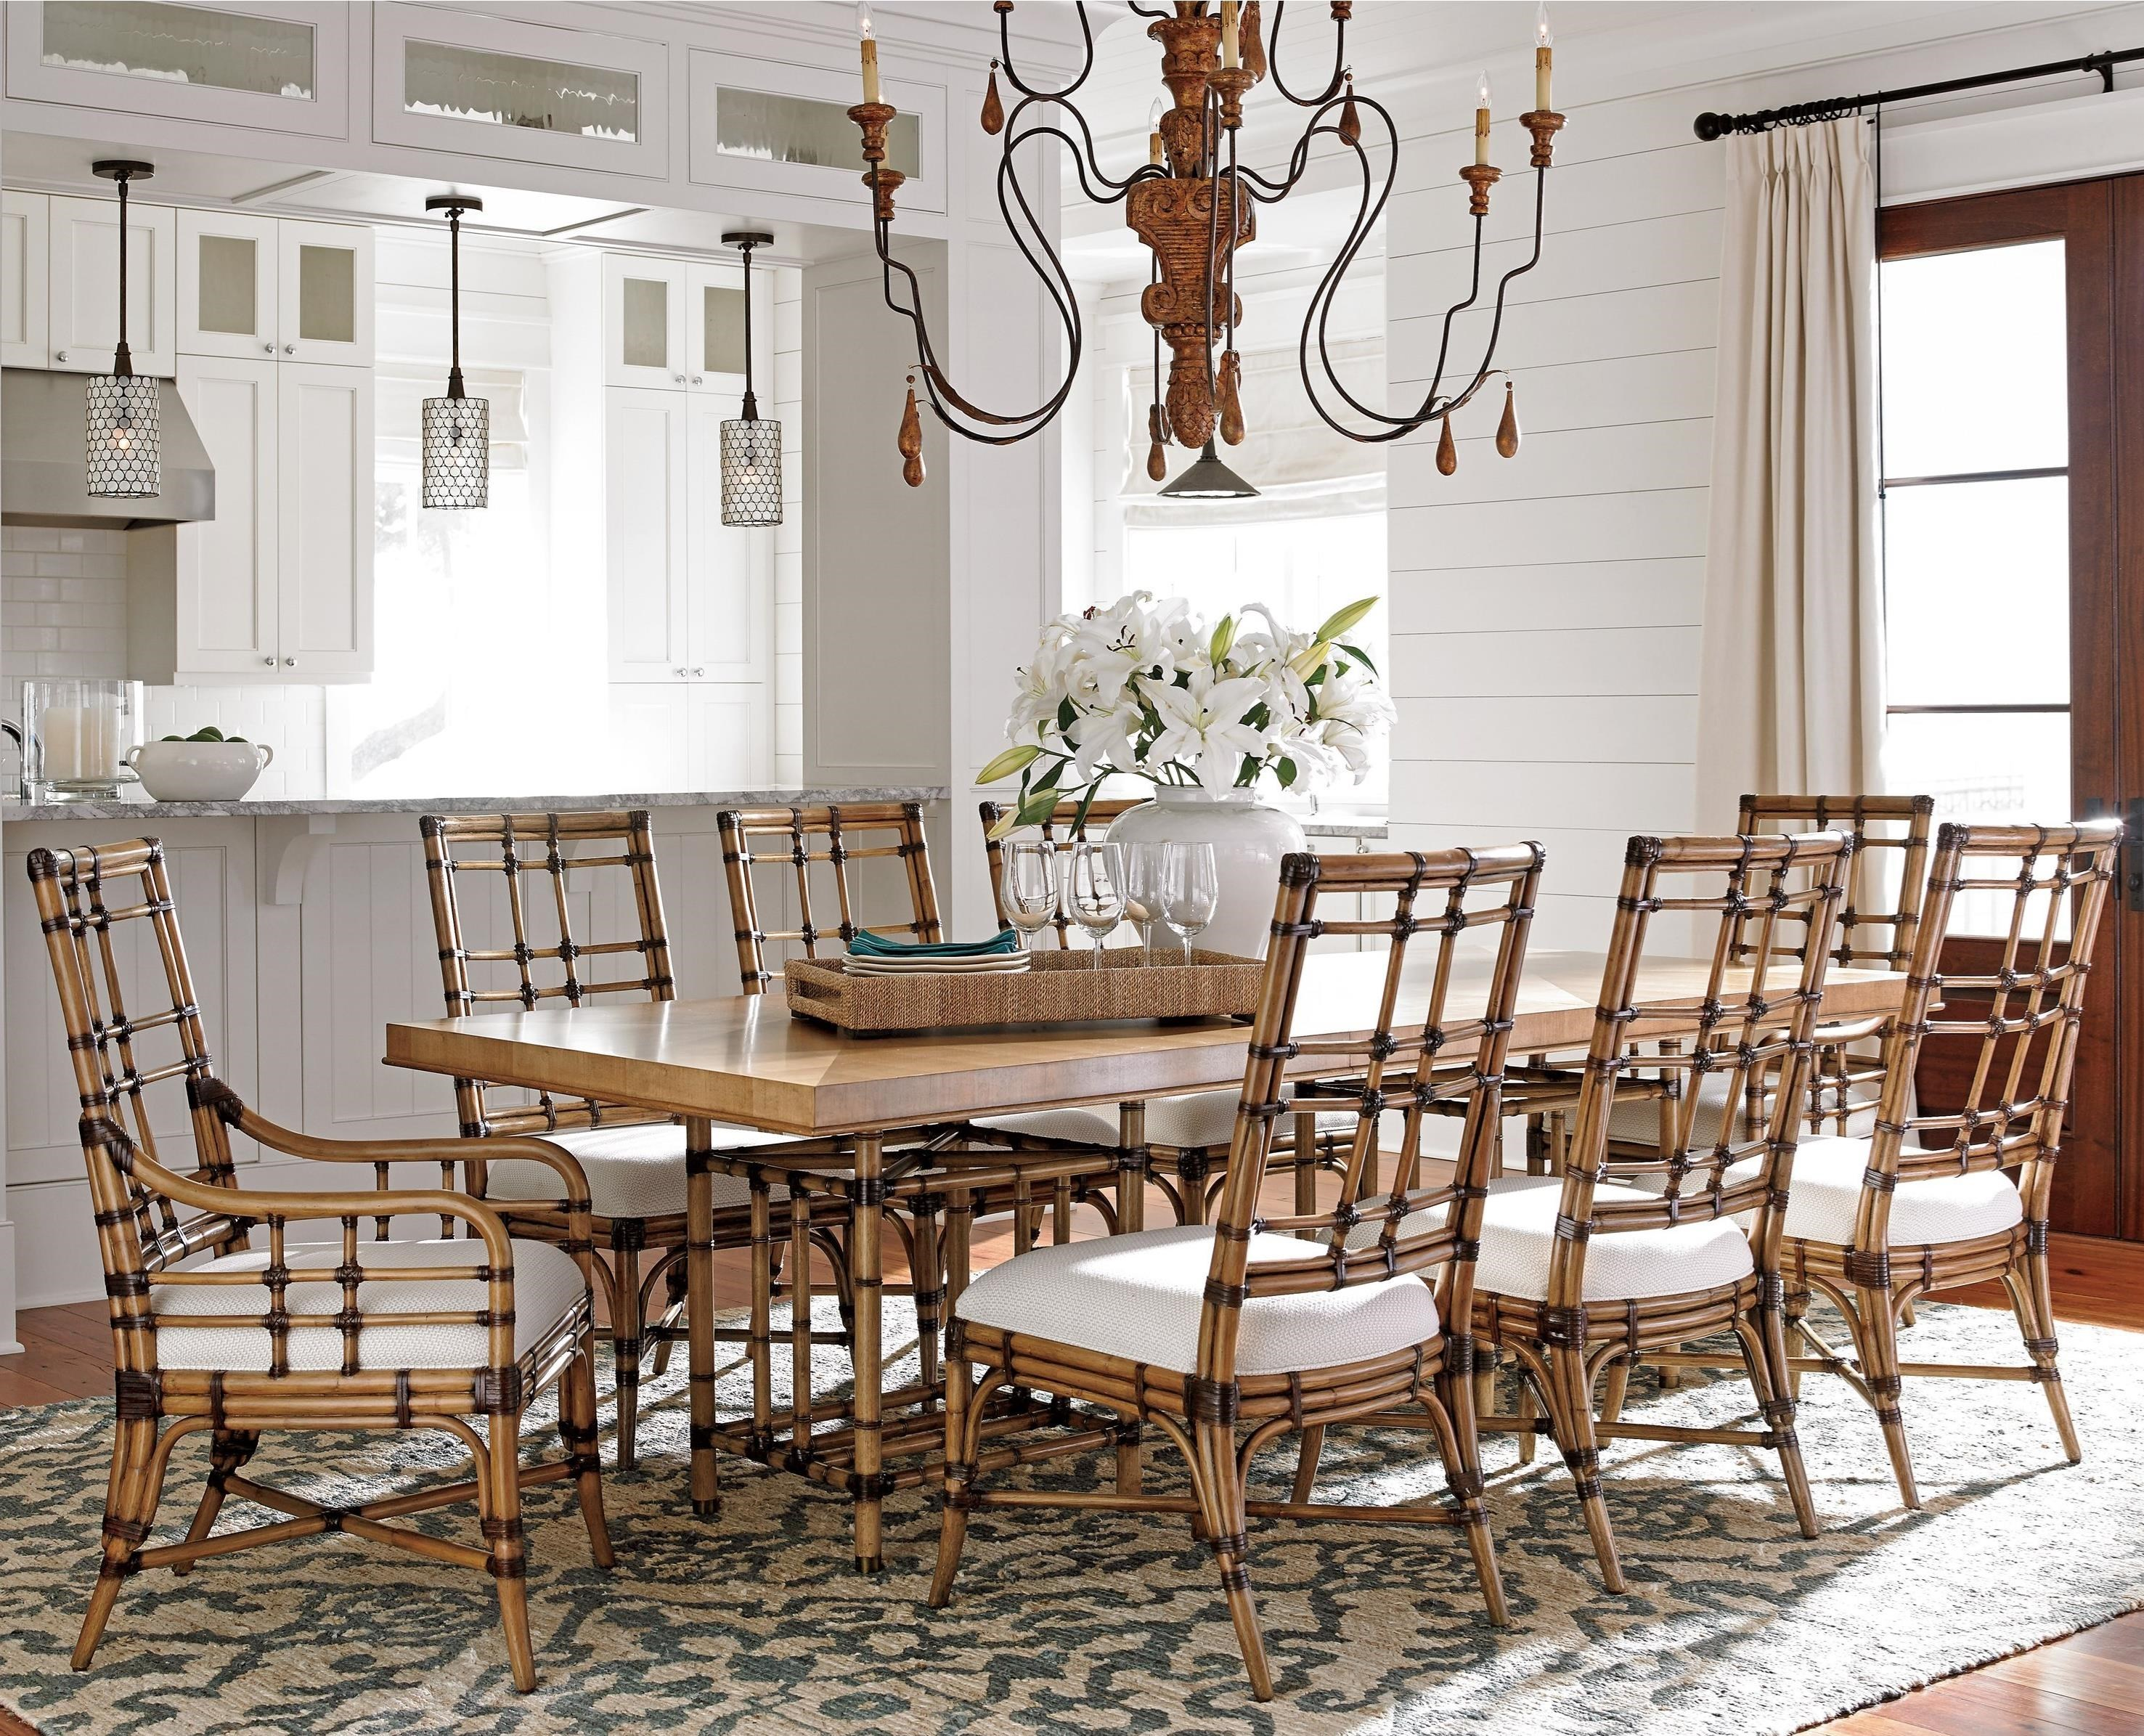 Tommy Bahama Home Twin Palms9 Pc Dining Set ...